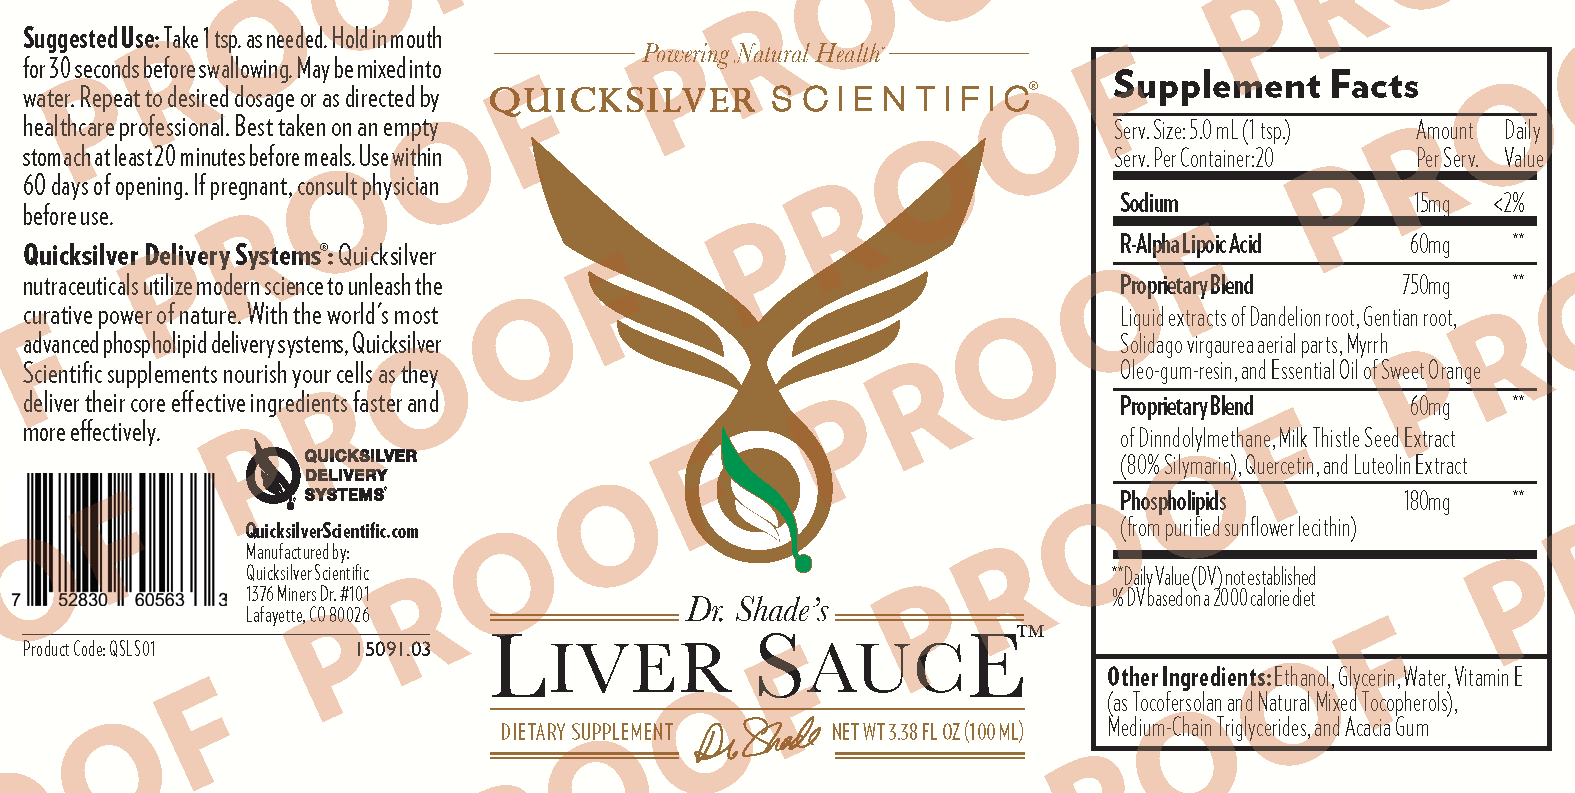 Liver Sauce 100ml Herbal Line 1509103 PRENATAL DHA 500 MG 90 GELS